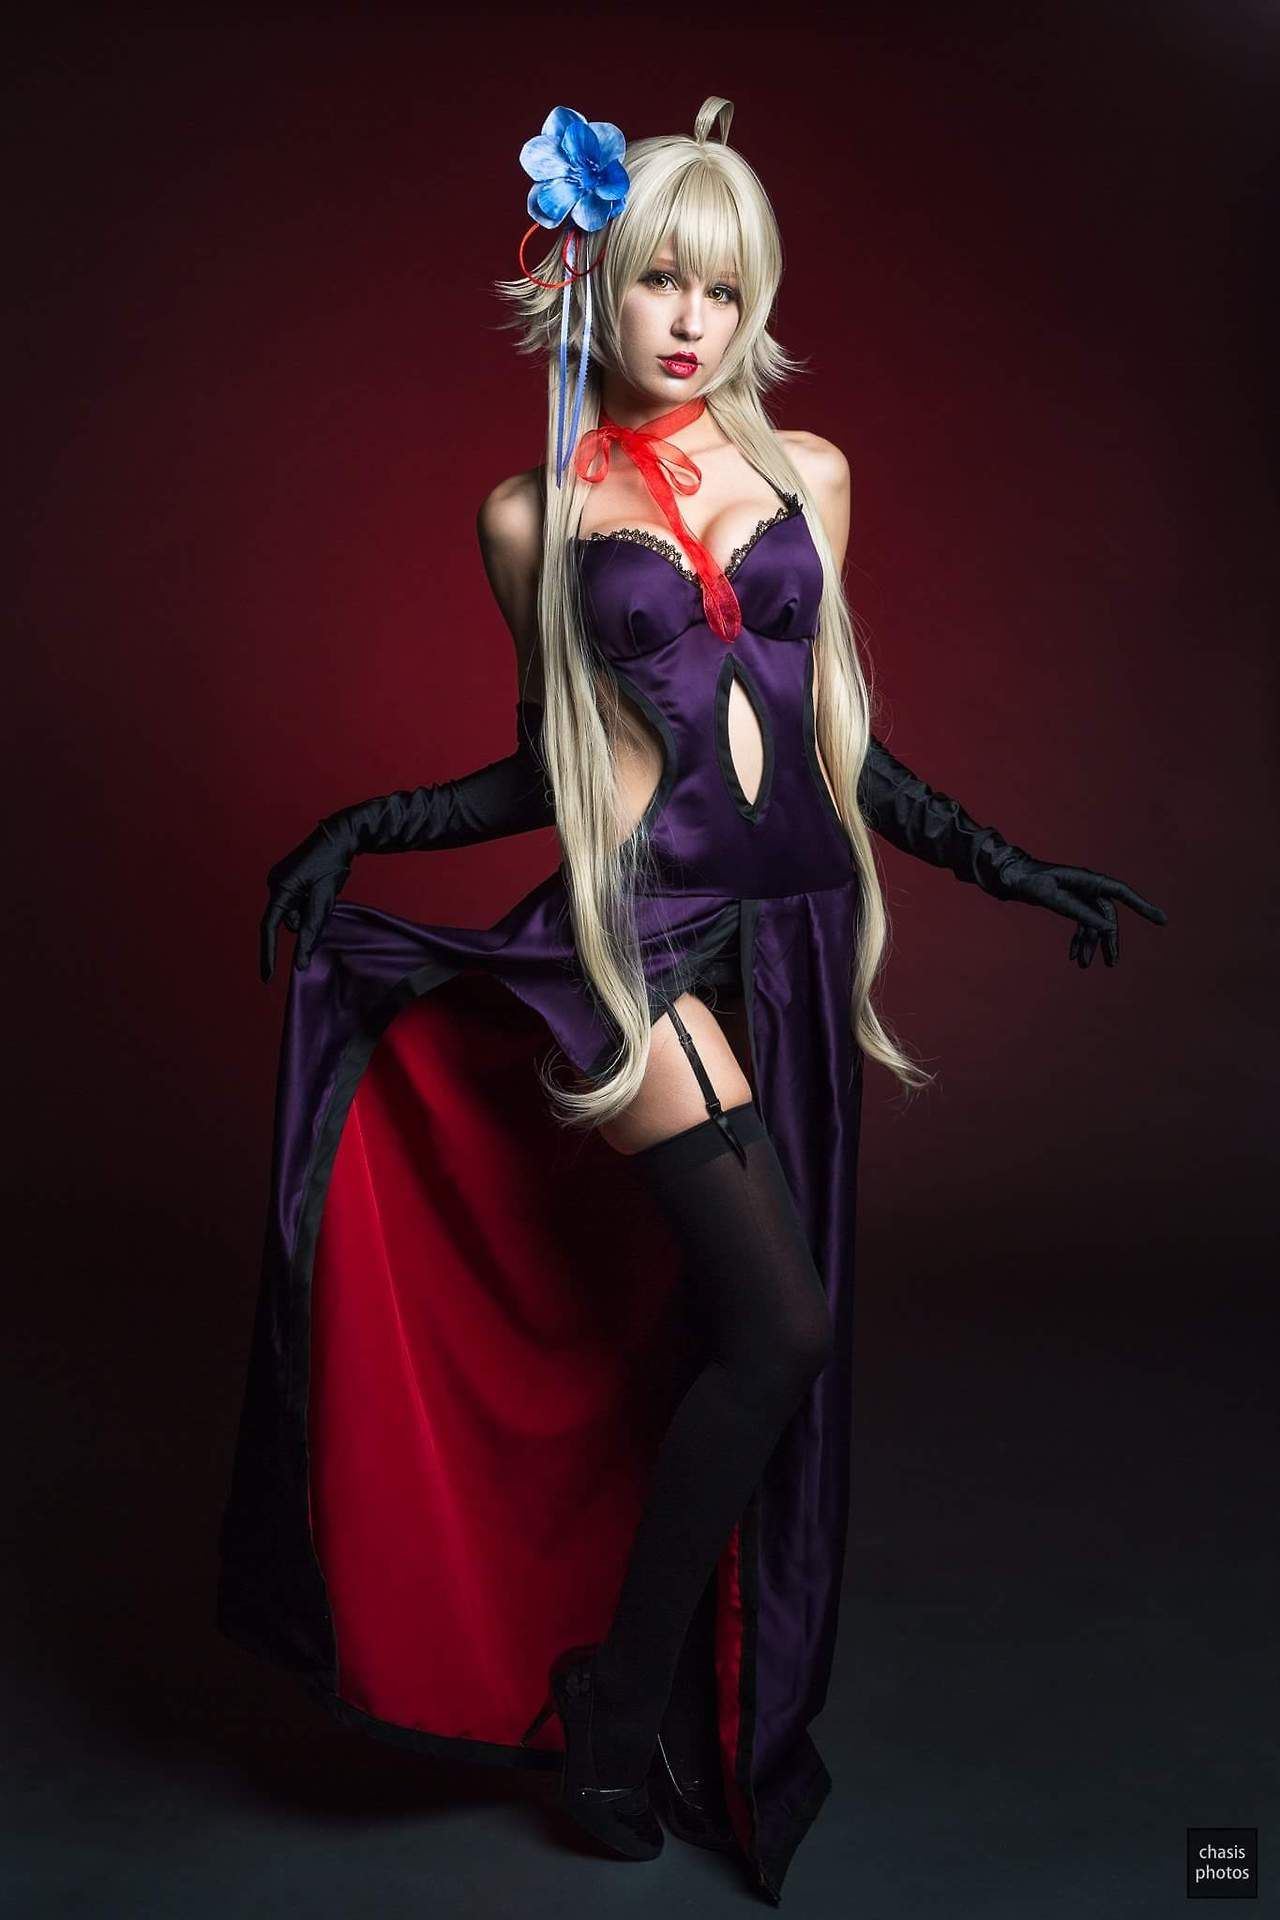 cosplayer: jean wanwan. country: united states. cosplay: jeanne